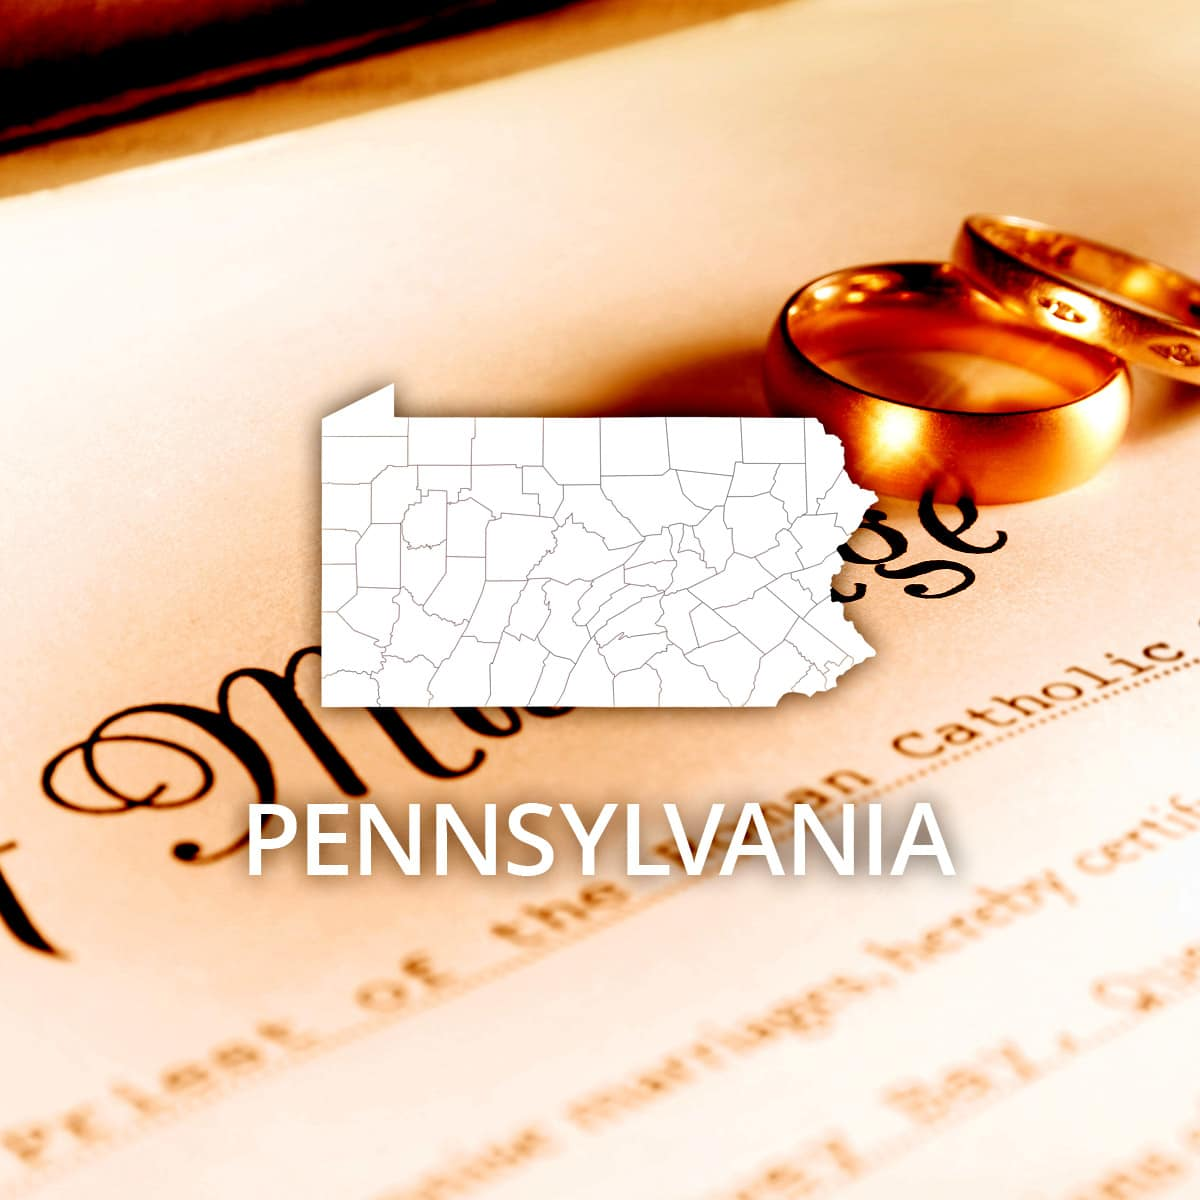 Where to Obtain a Pennsylvania Marriage Certificate